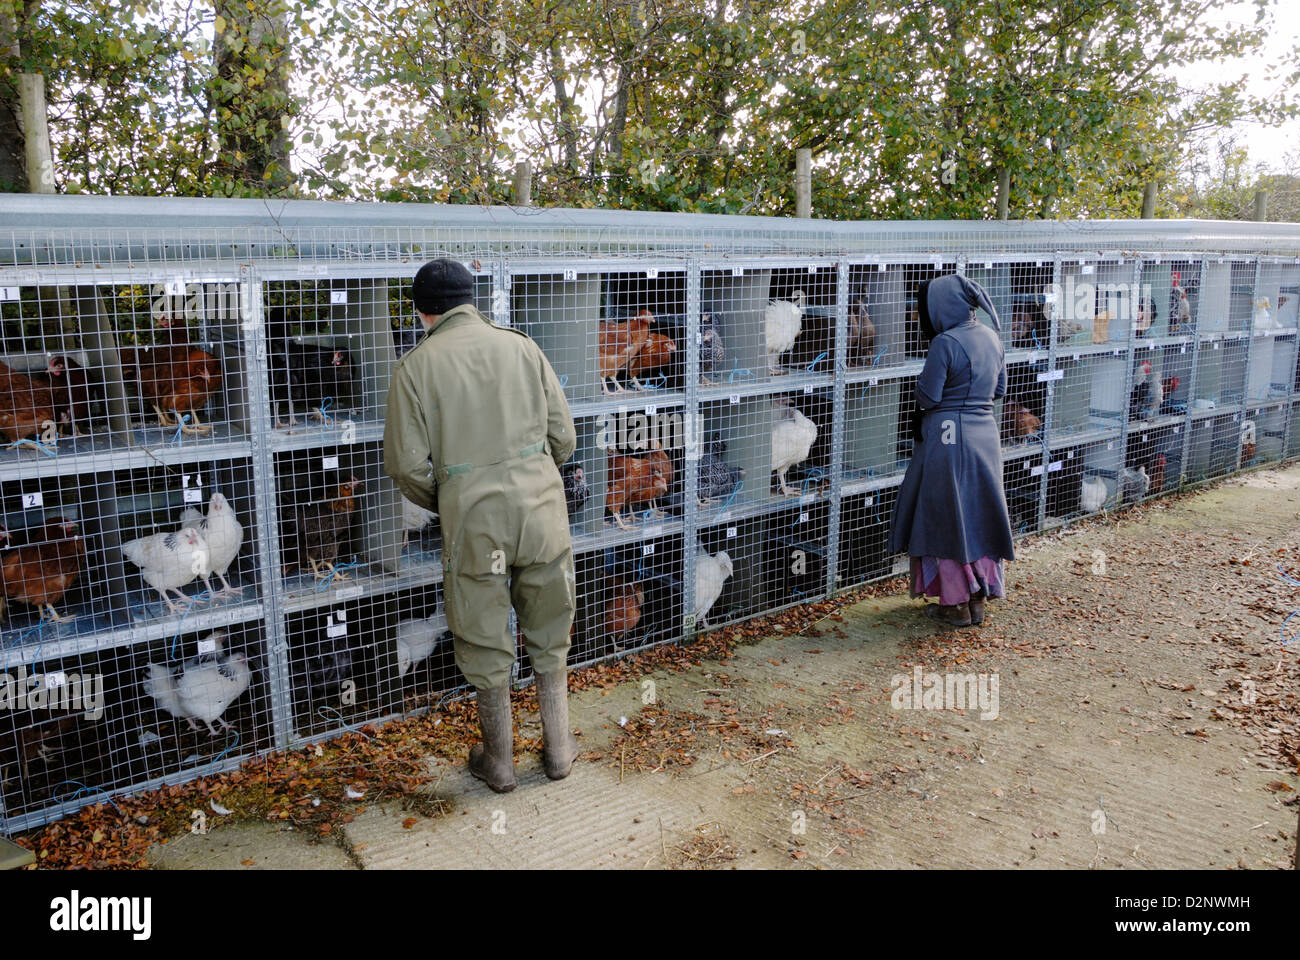 Caged poultry at a poultry sale, Wales - Stock Image